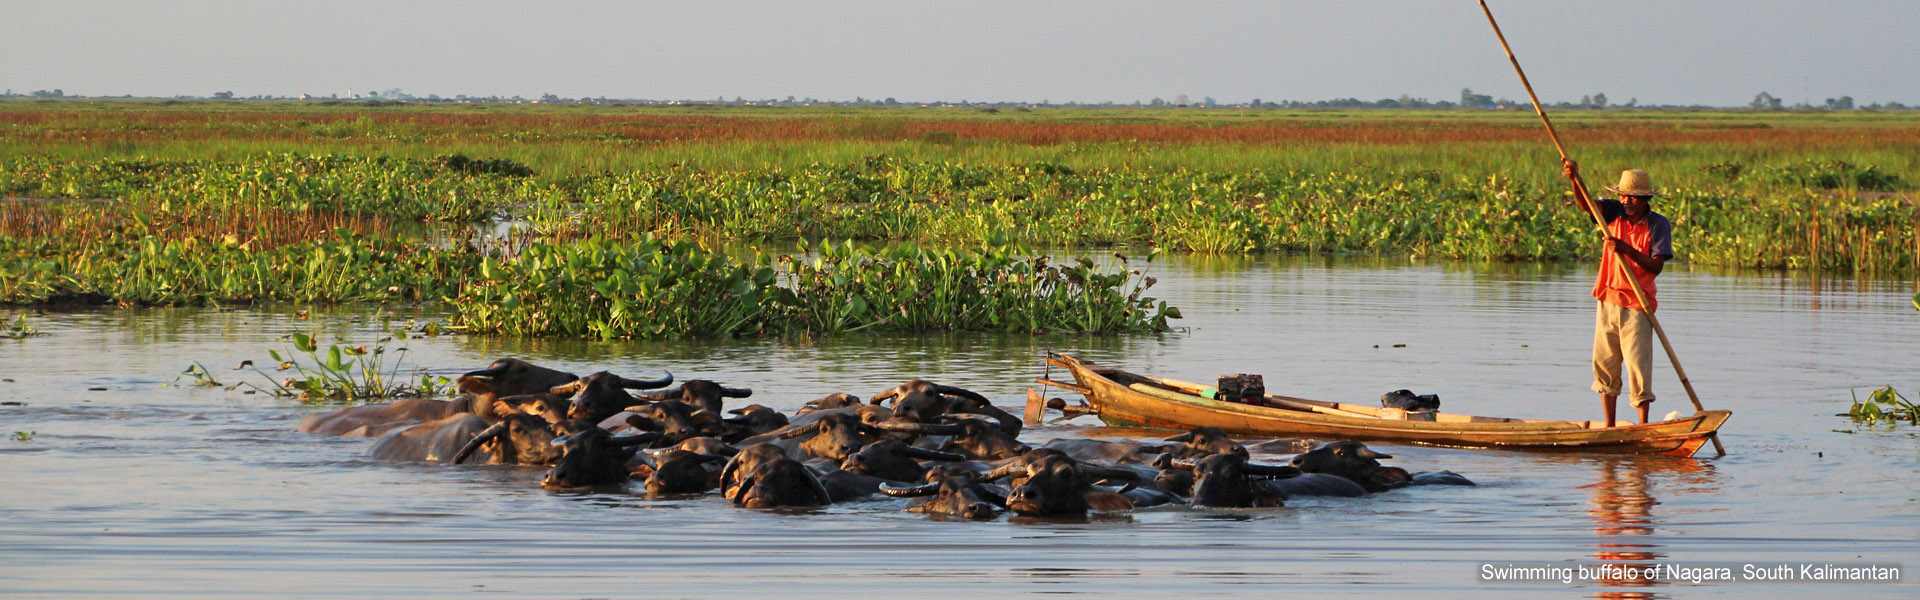 Swimming buffalo of Nagara, South Kalimantan